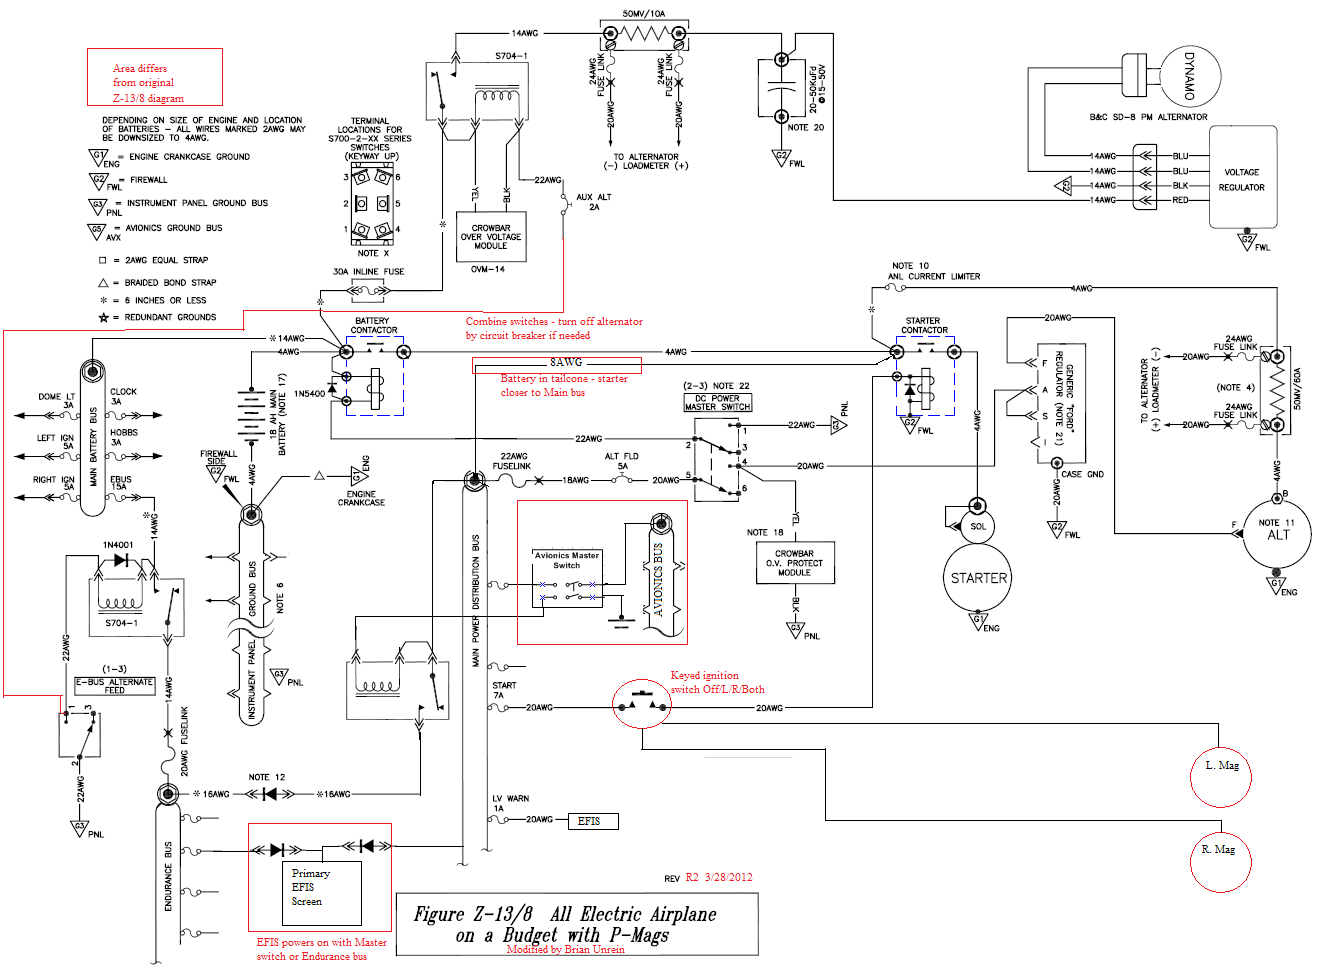 Garmin Wiring Diagram 17 - All Diagram Schematics on